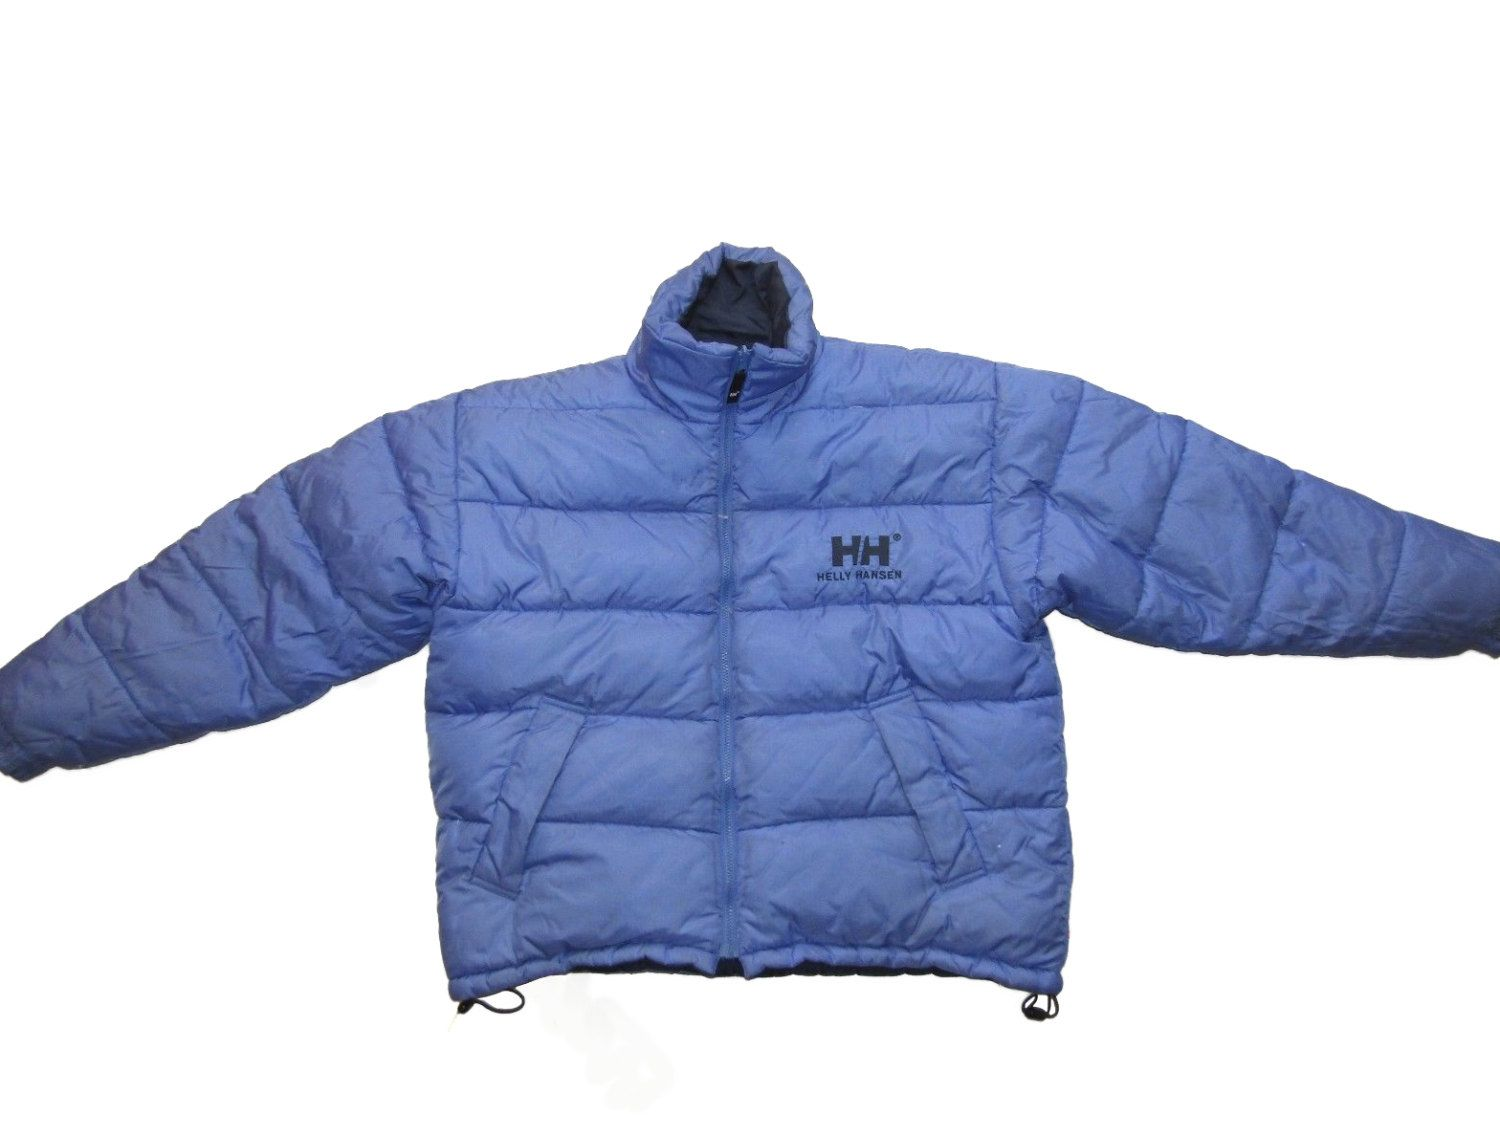 Vintage 90 S Helly Hansen Outdoor Proof Hooded Jacket Color Block Blue Red Size M Hooded Jacket Jackets Helly Hansen [ 1136 x 1500 Pixel ]